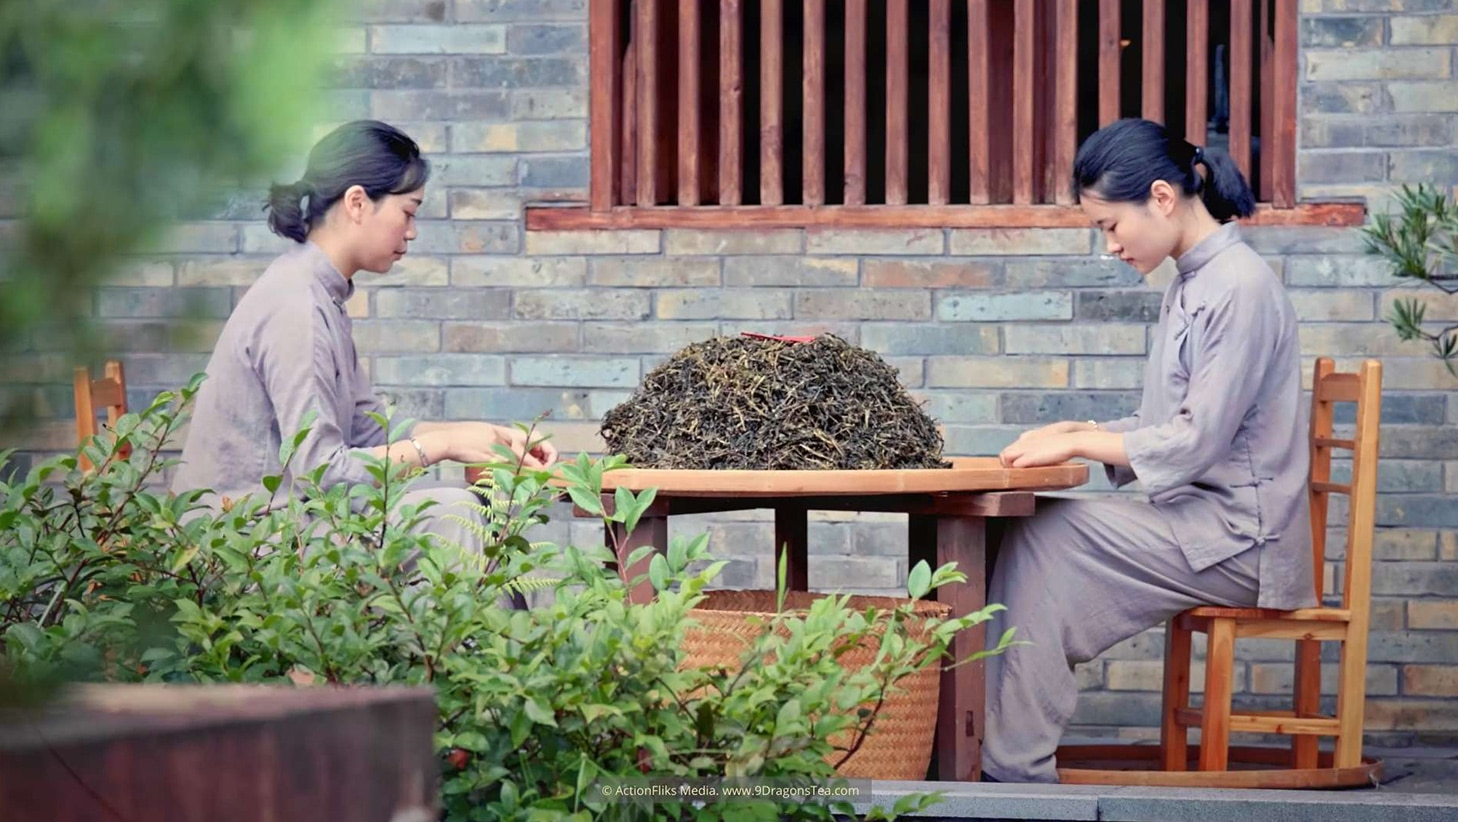 Wuyishan Culture traditional tea making young girls selecting dry loose leaf teas in courtyard